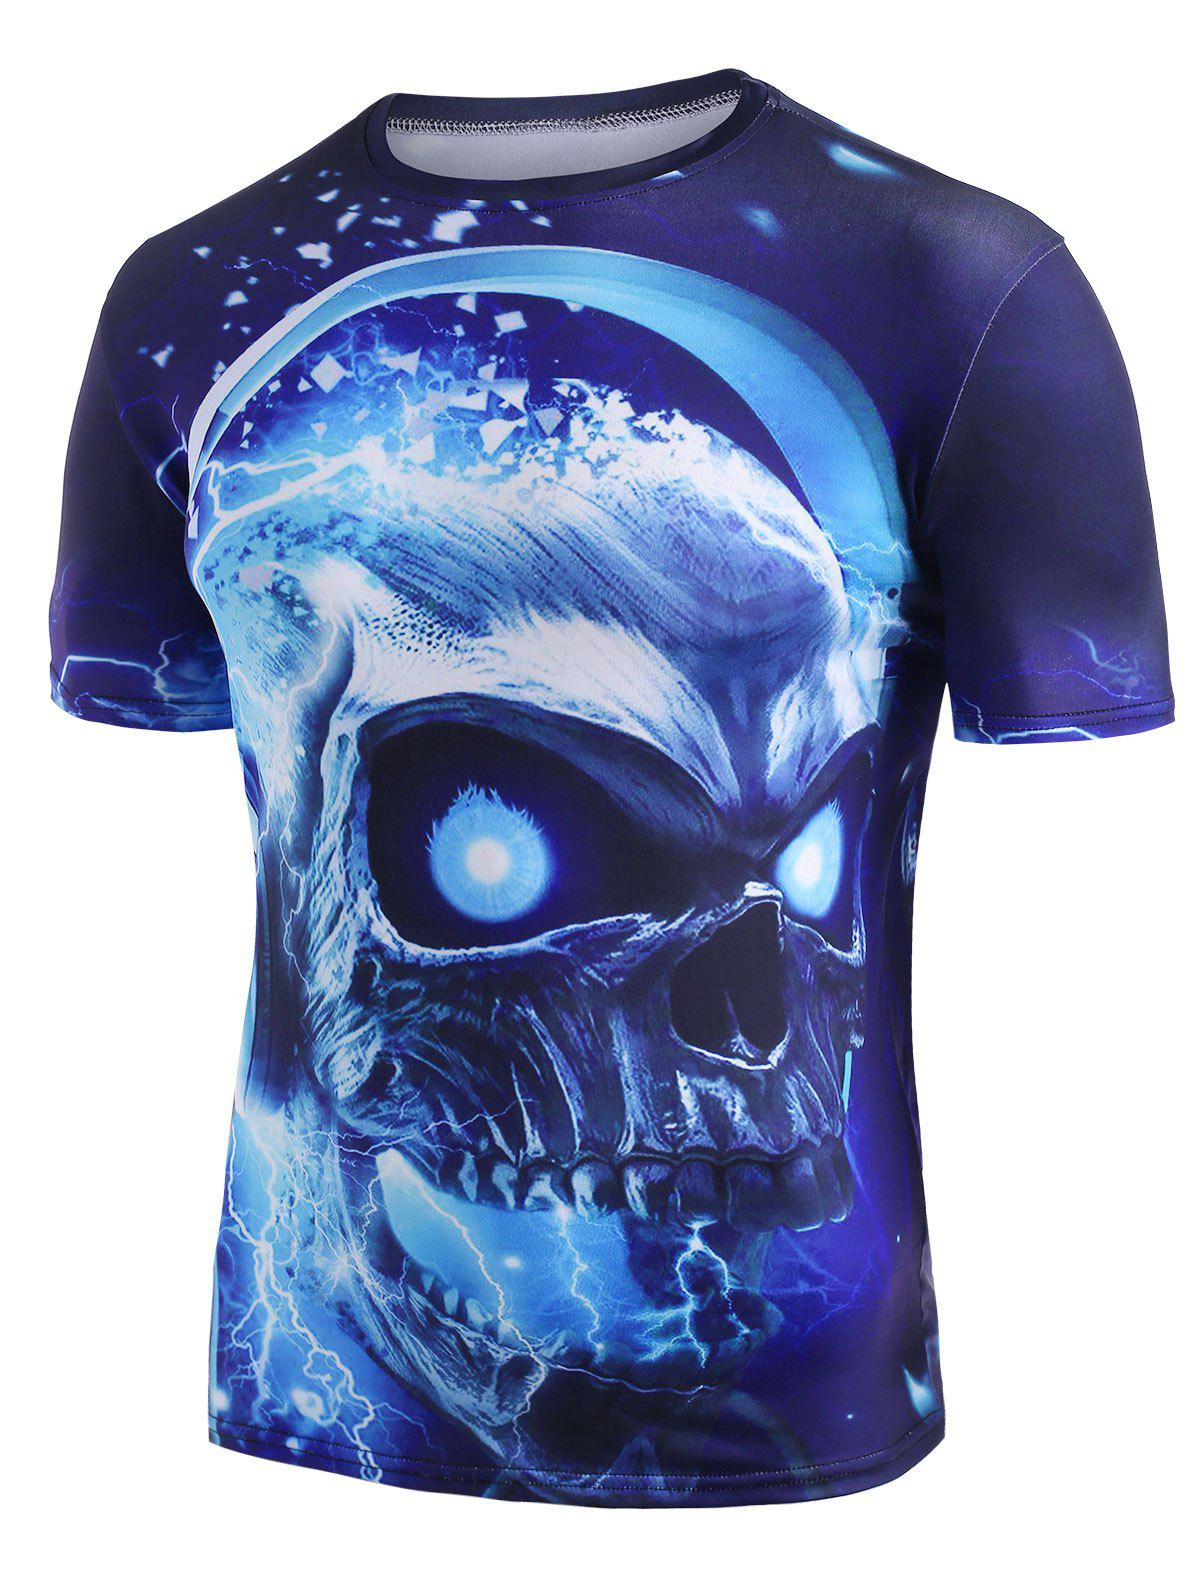 Skull With Headphone Graphic Crew Neck Casual T Shirt - DODGER BLUE 2XL